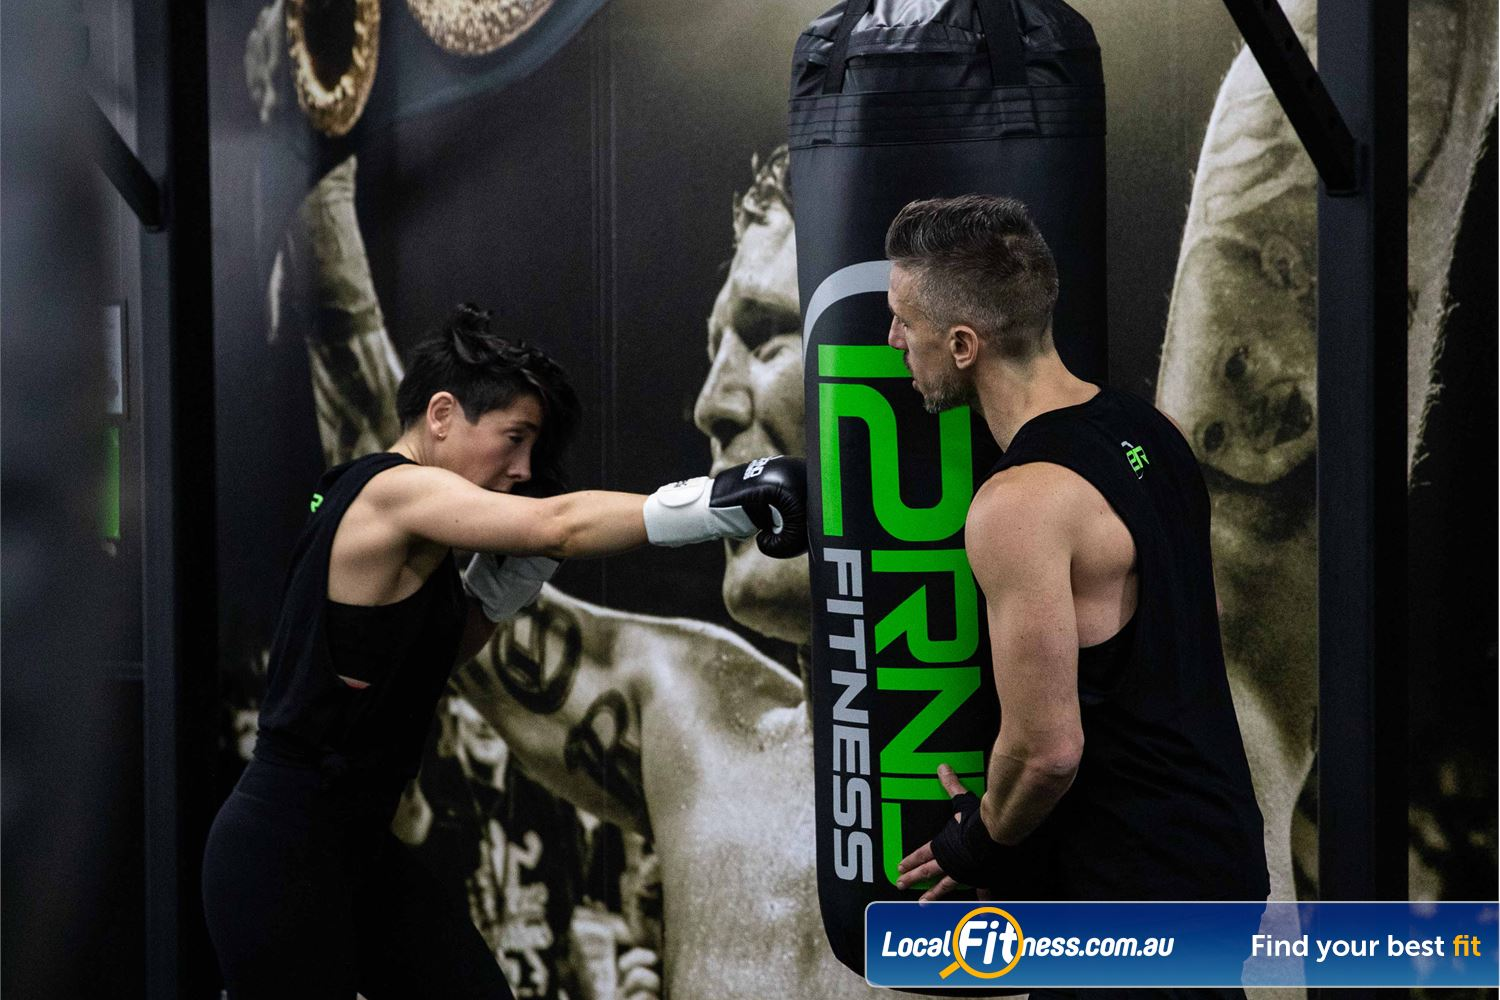 12 Round Fitness Camberwell Our workouts combine boxing skills and drills.